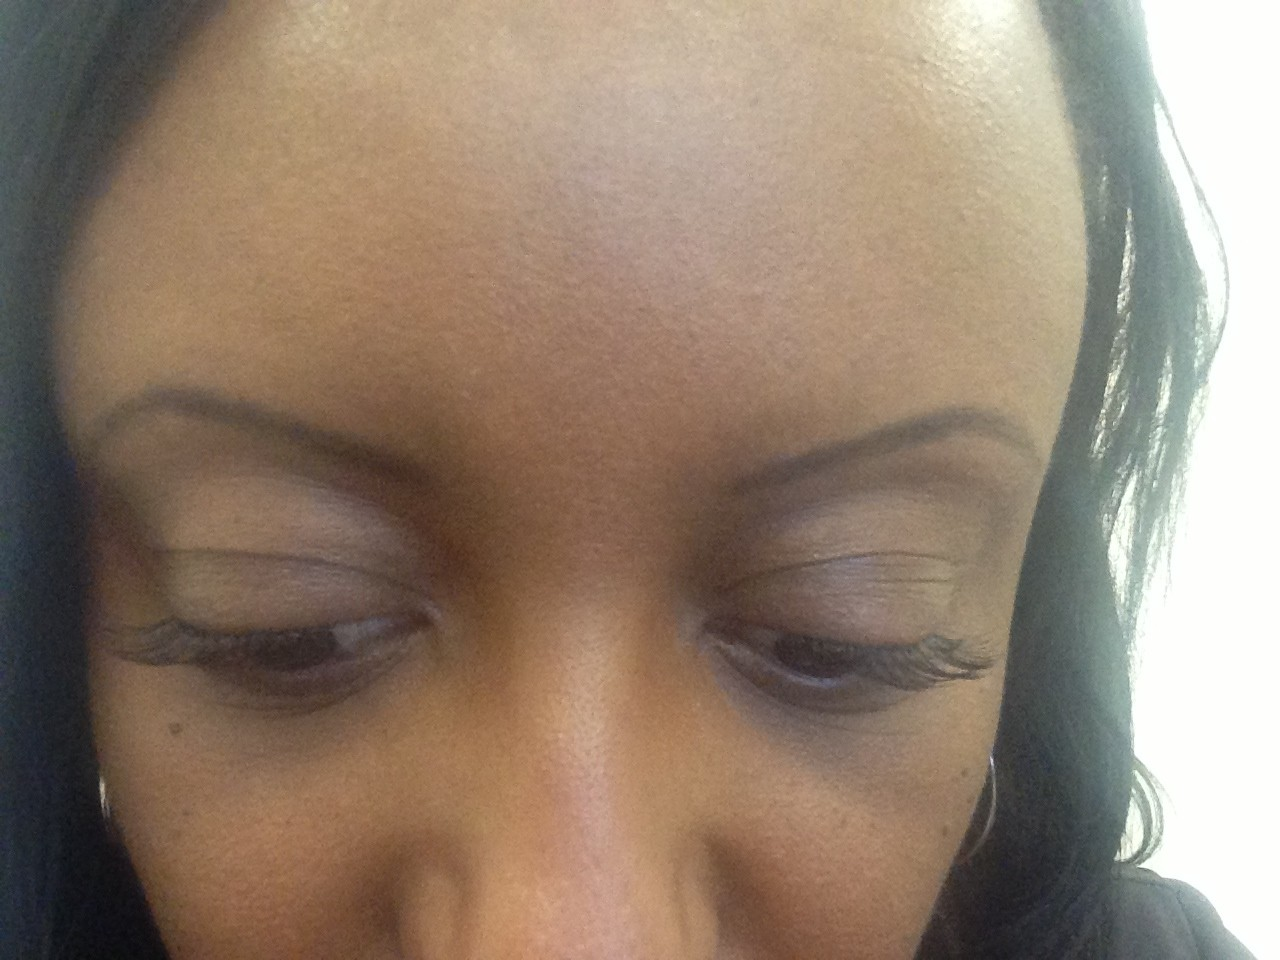 Eyebrows after Burnt Almond Oil Treatment